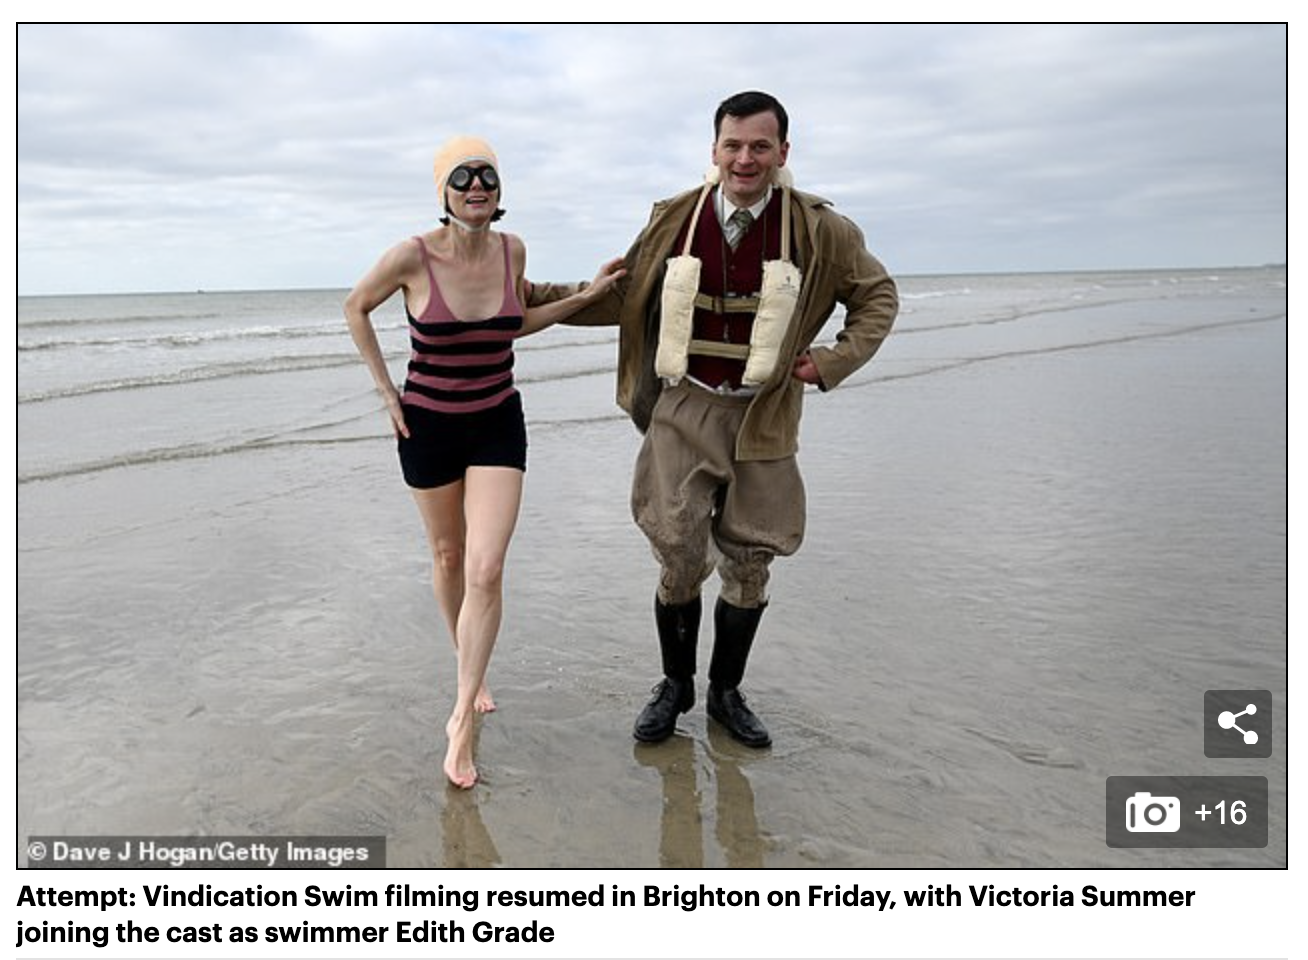 Daily Mail: Vindication Swim FIRST LOOK: Victoria Summer becomes 1920s swimmer Edith Grade as filming continues for biopic depicting her fierce rivalry with Mercedes Gleitze